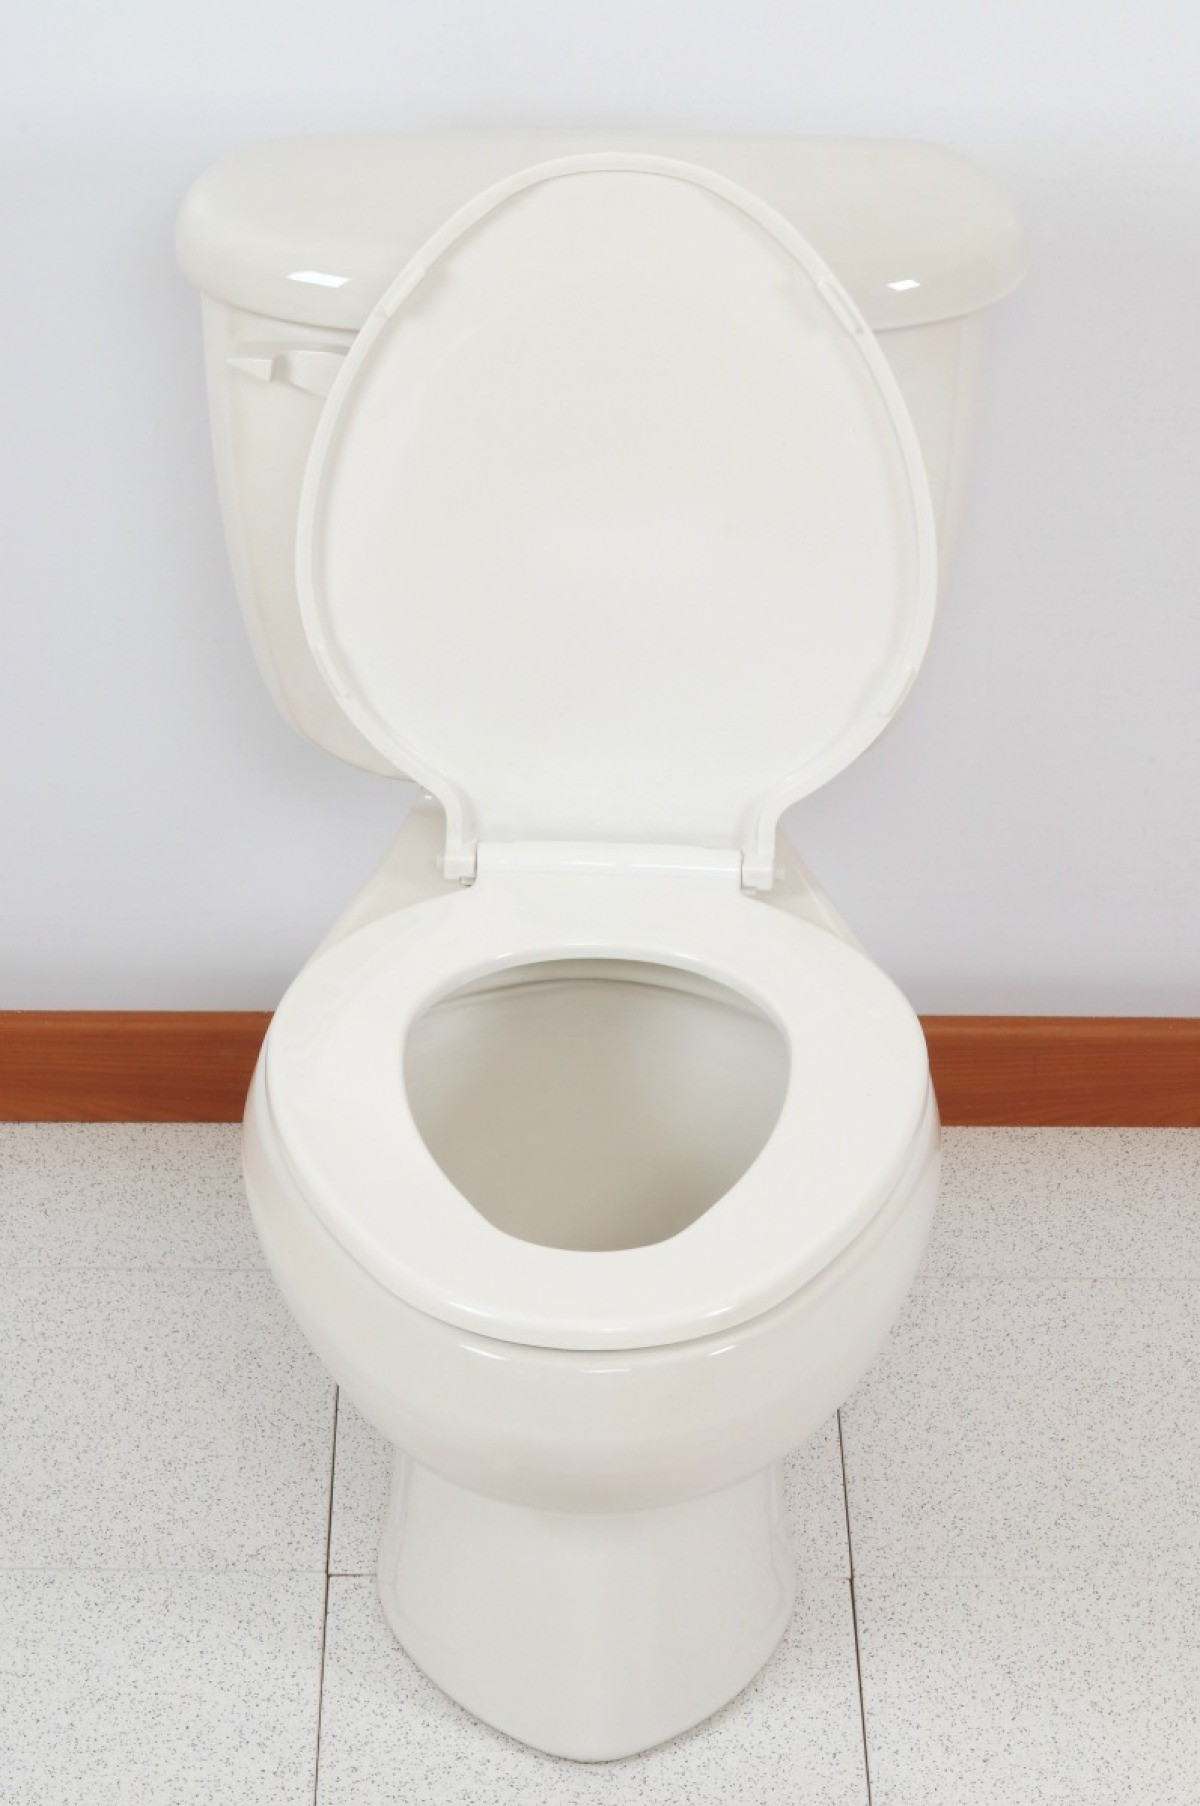 How To Remove Mineral Deposits From Bottom Of Toilet Bowl